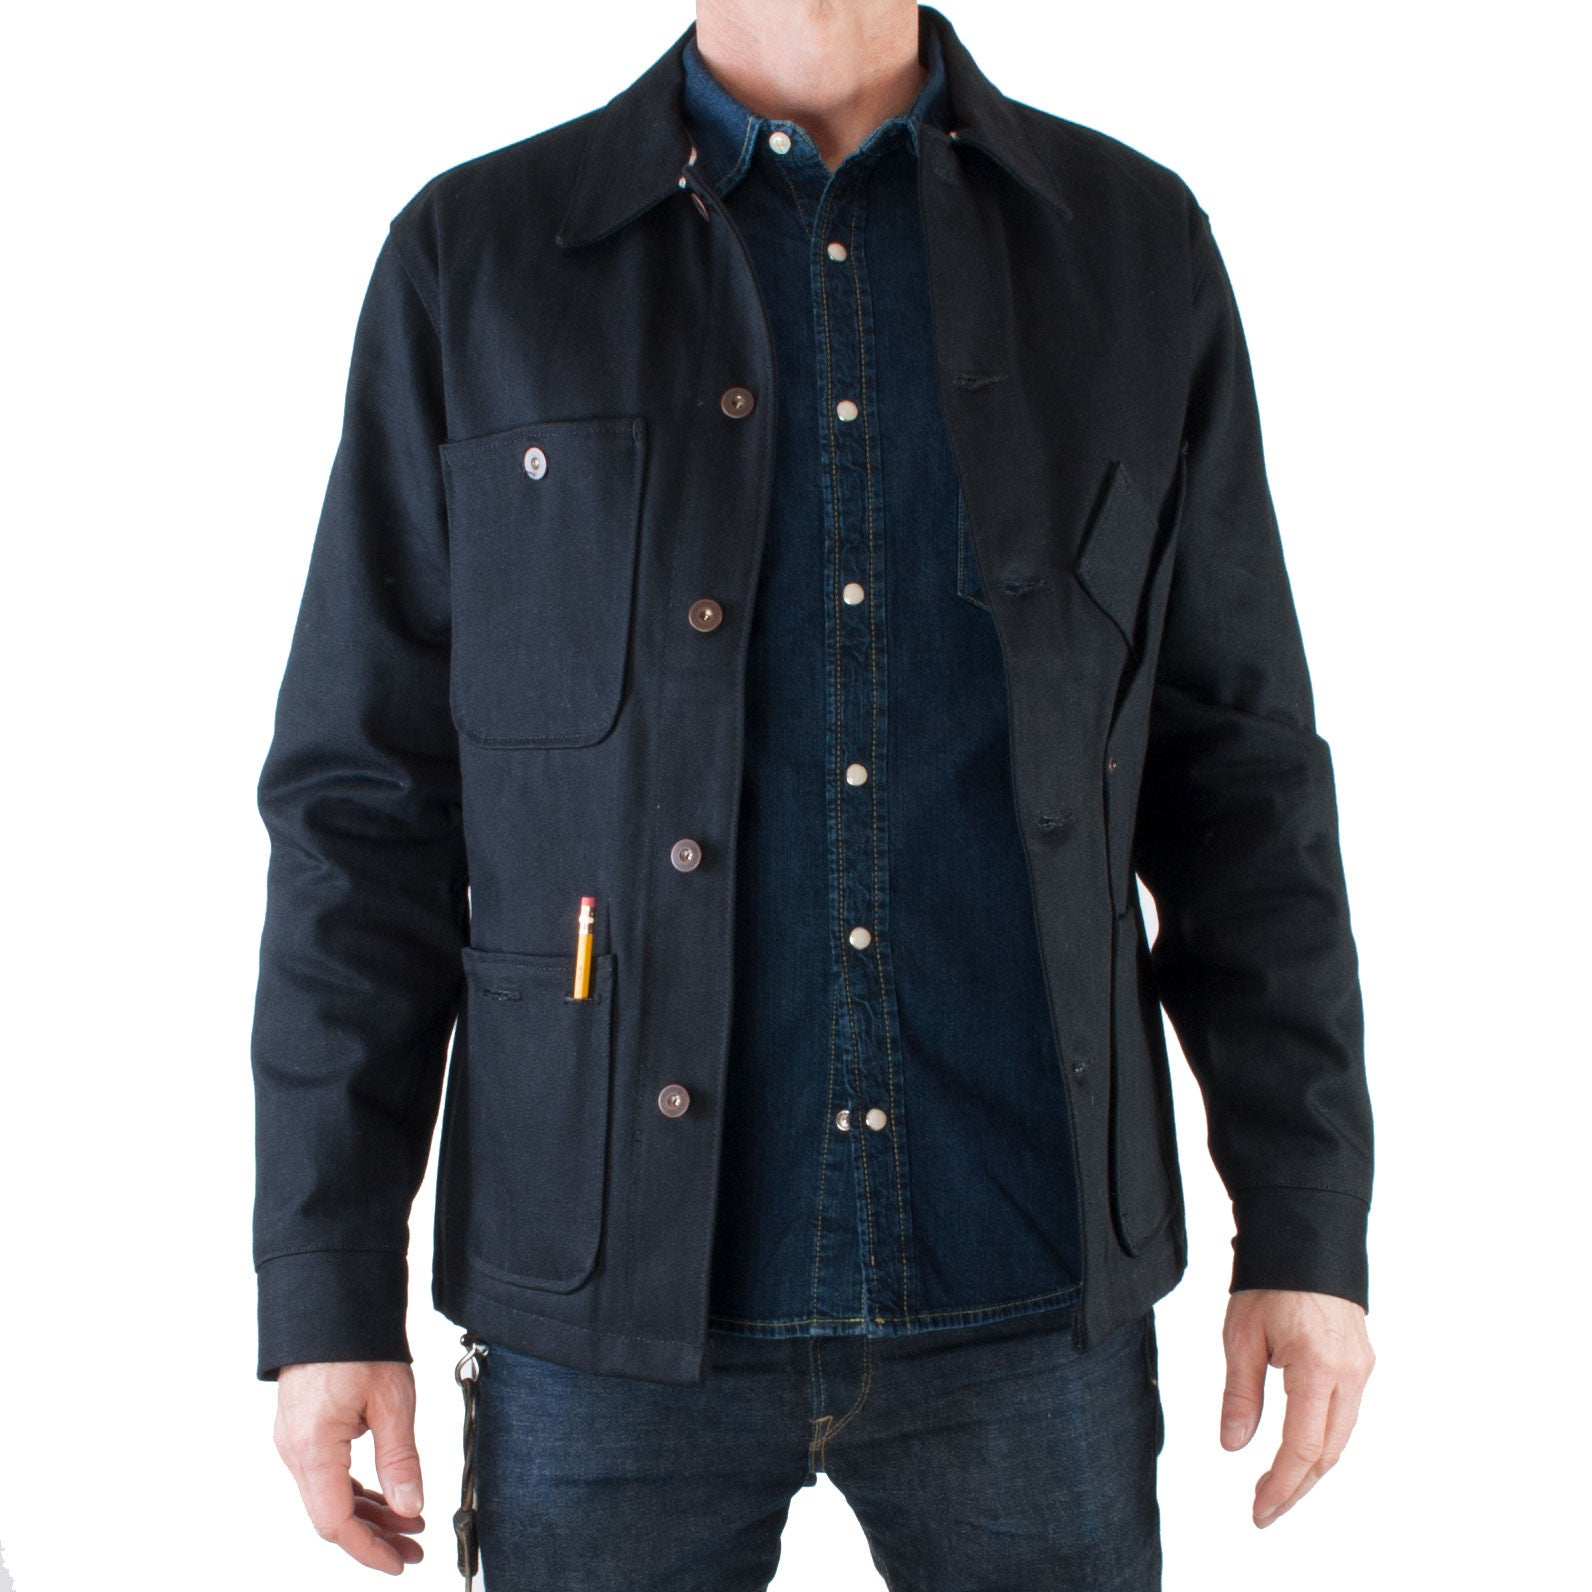 Tellason Coverall Jacket Japanese Selvedge Denim (Black) - Brund - 2